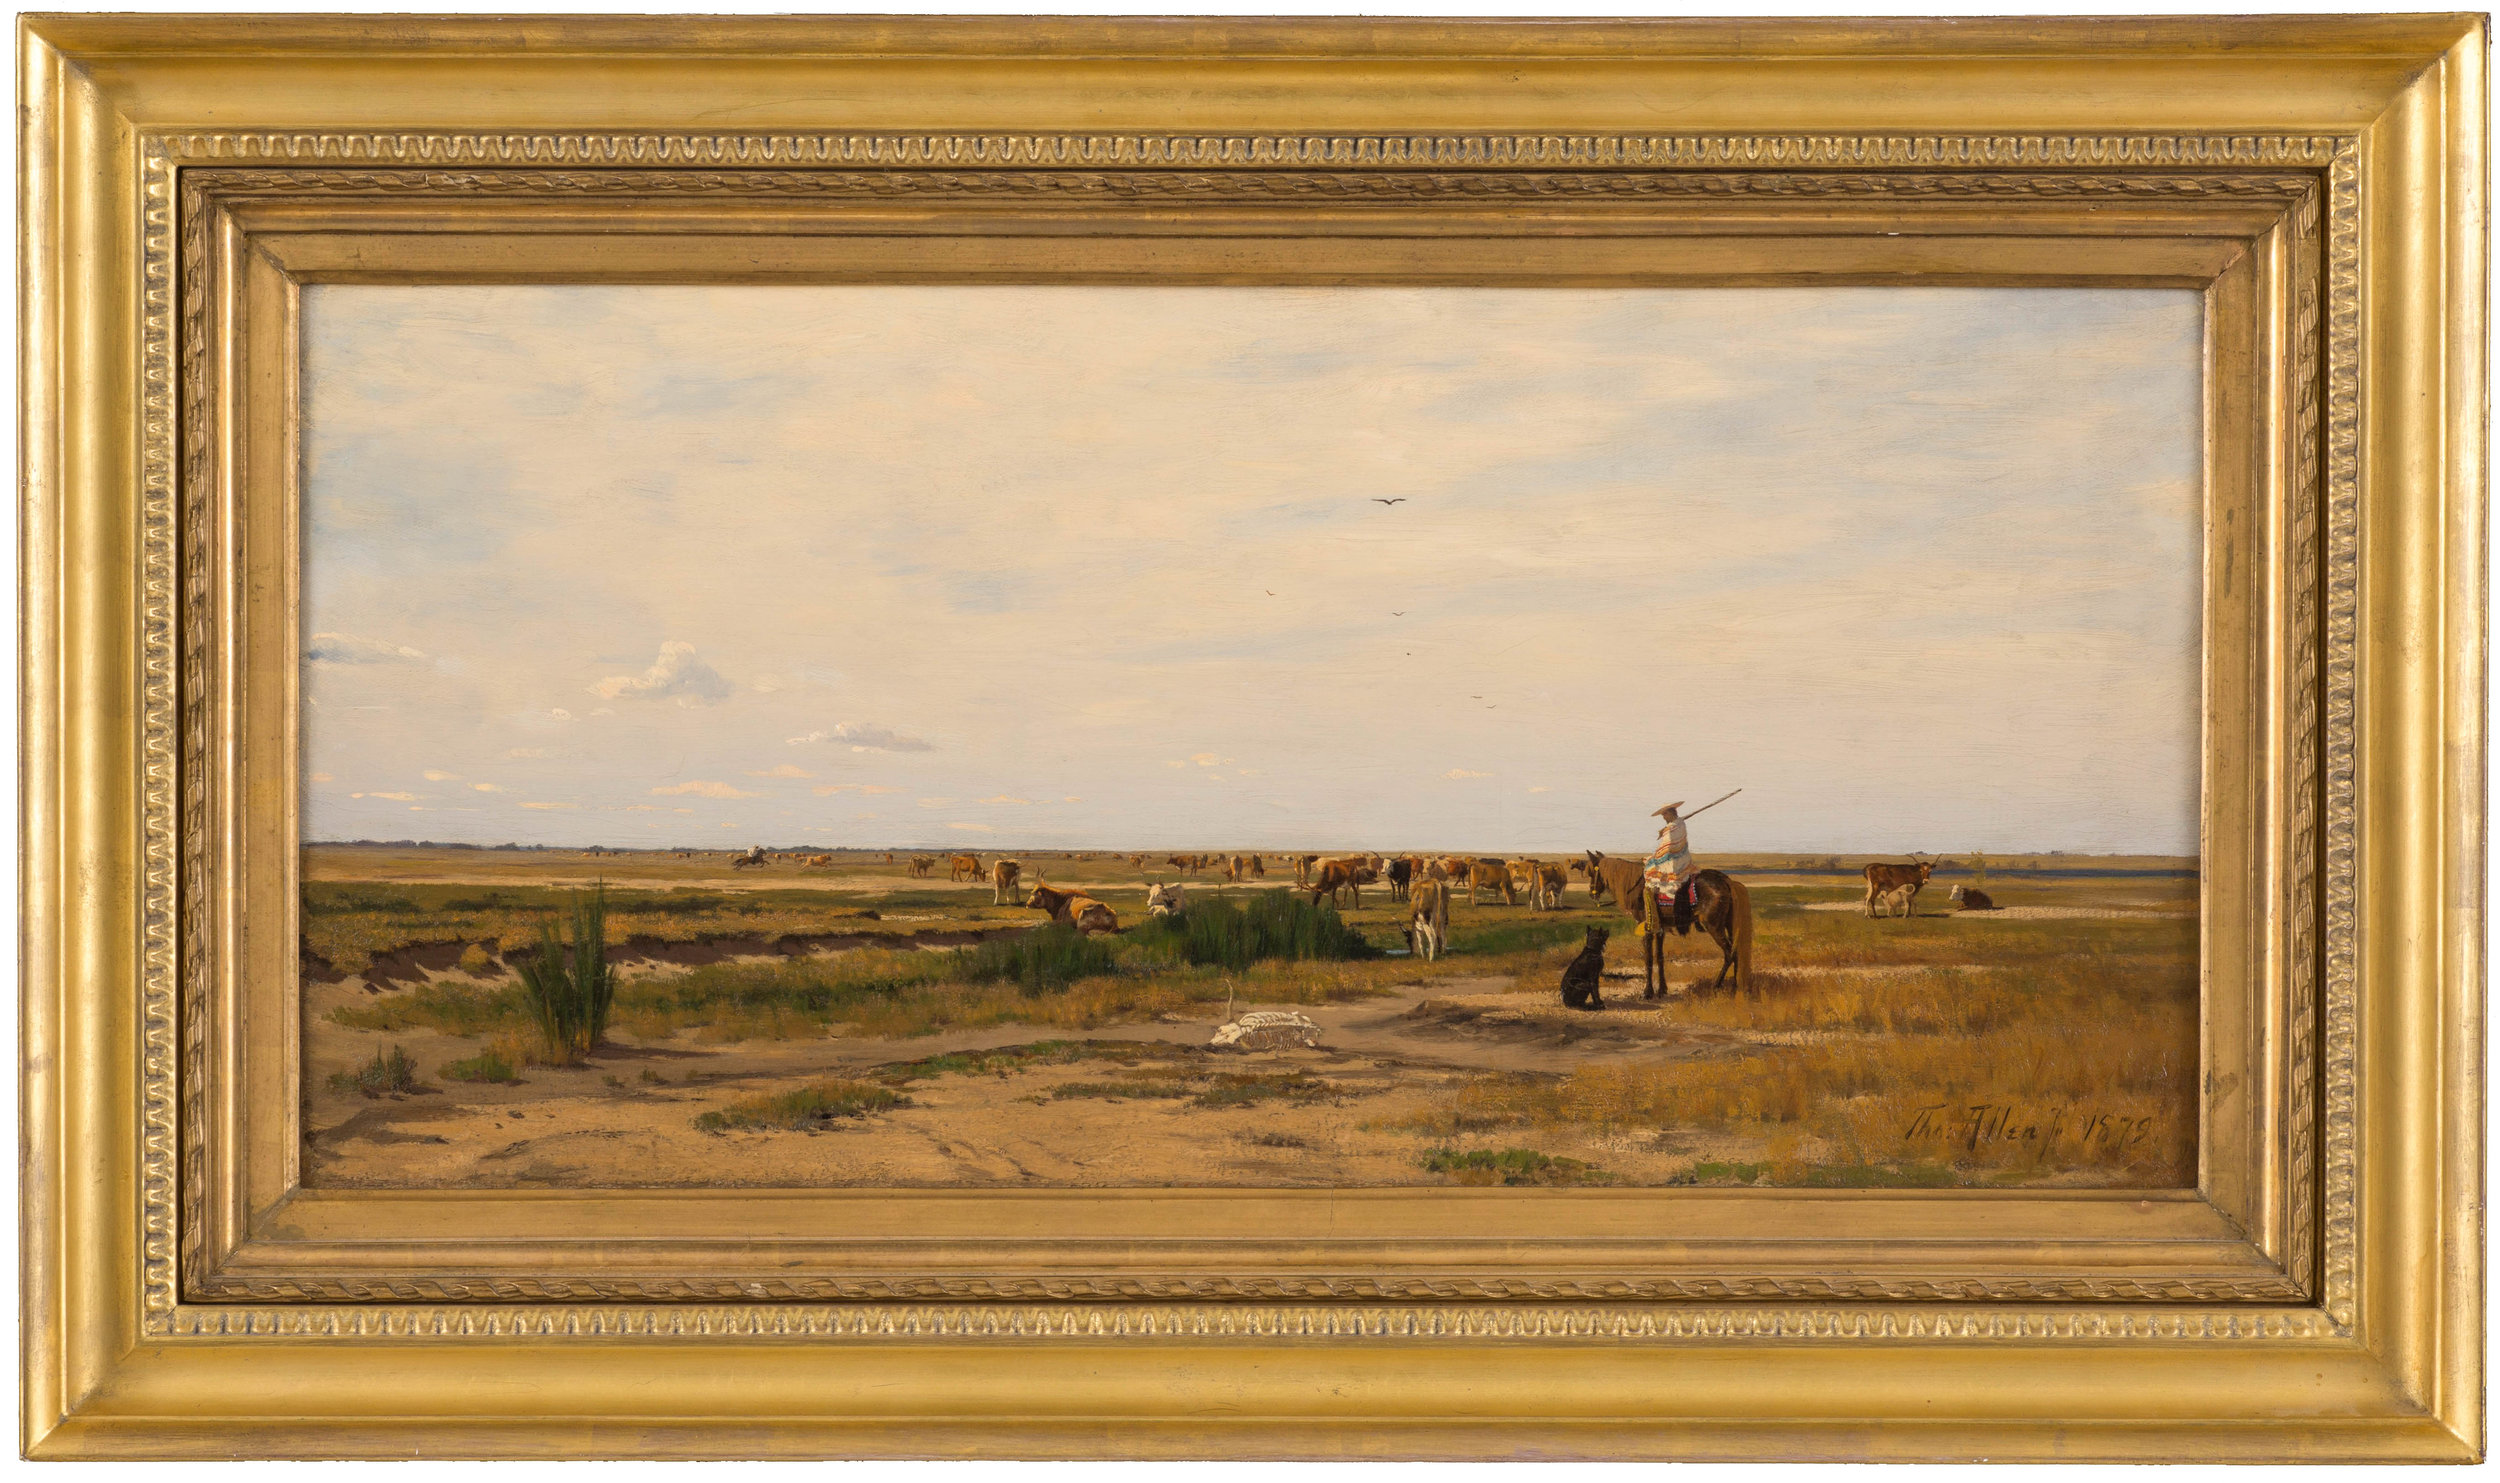 """Thomas Allen (1849-1924),A Prairie Scene with Mexican Herdsmen and Cattle,1879, 16"""" x 32.5"""", oil on canvas. Courtesy Rainone Galleries, Inc. Arlington, Texas. High Resolution image by David Wharton Photography of Fort Worth."""